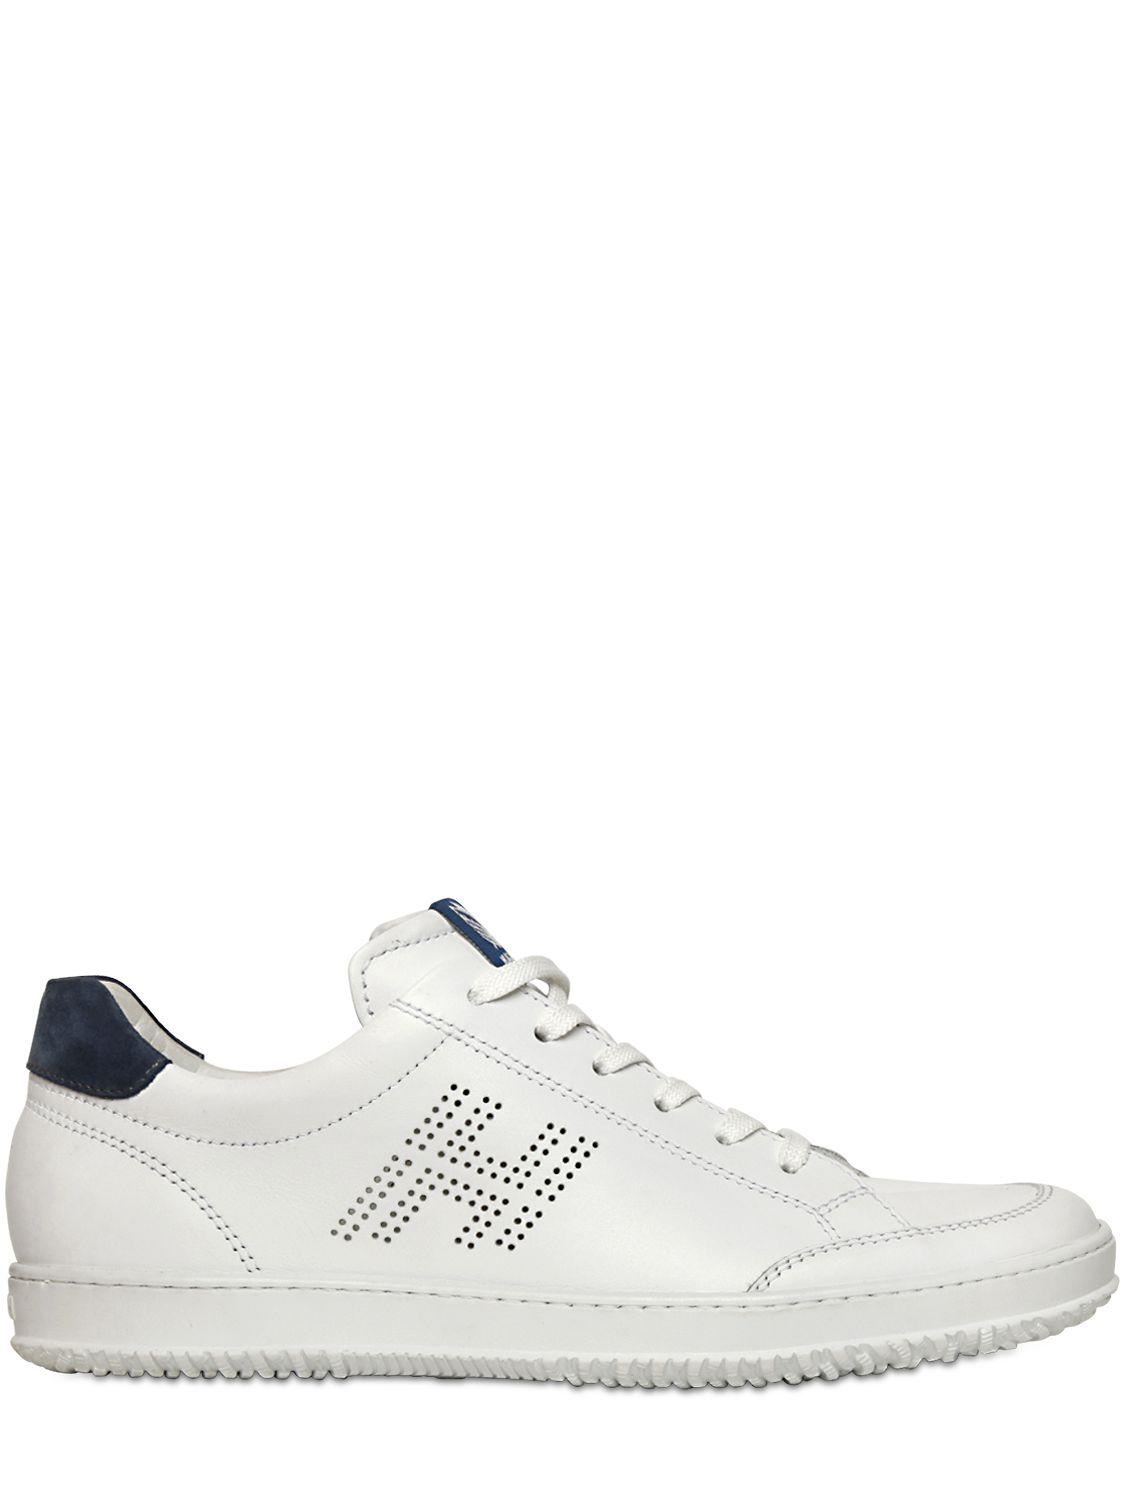 Hogan. Men's White 20mm Perforated Leather Sneakers